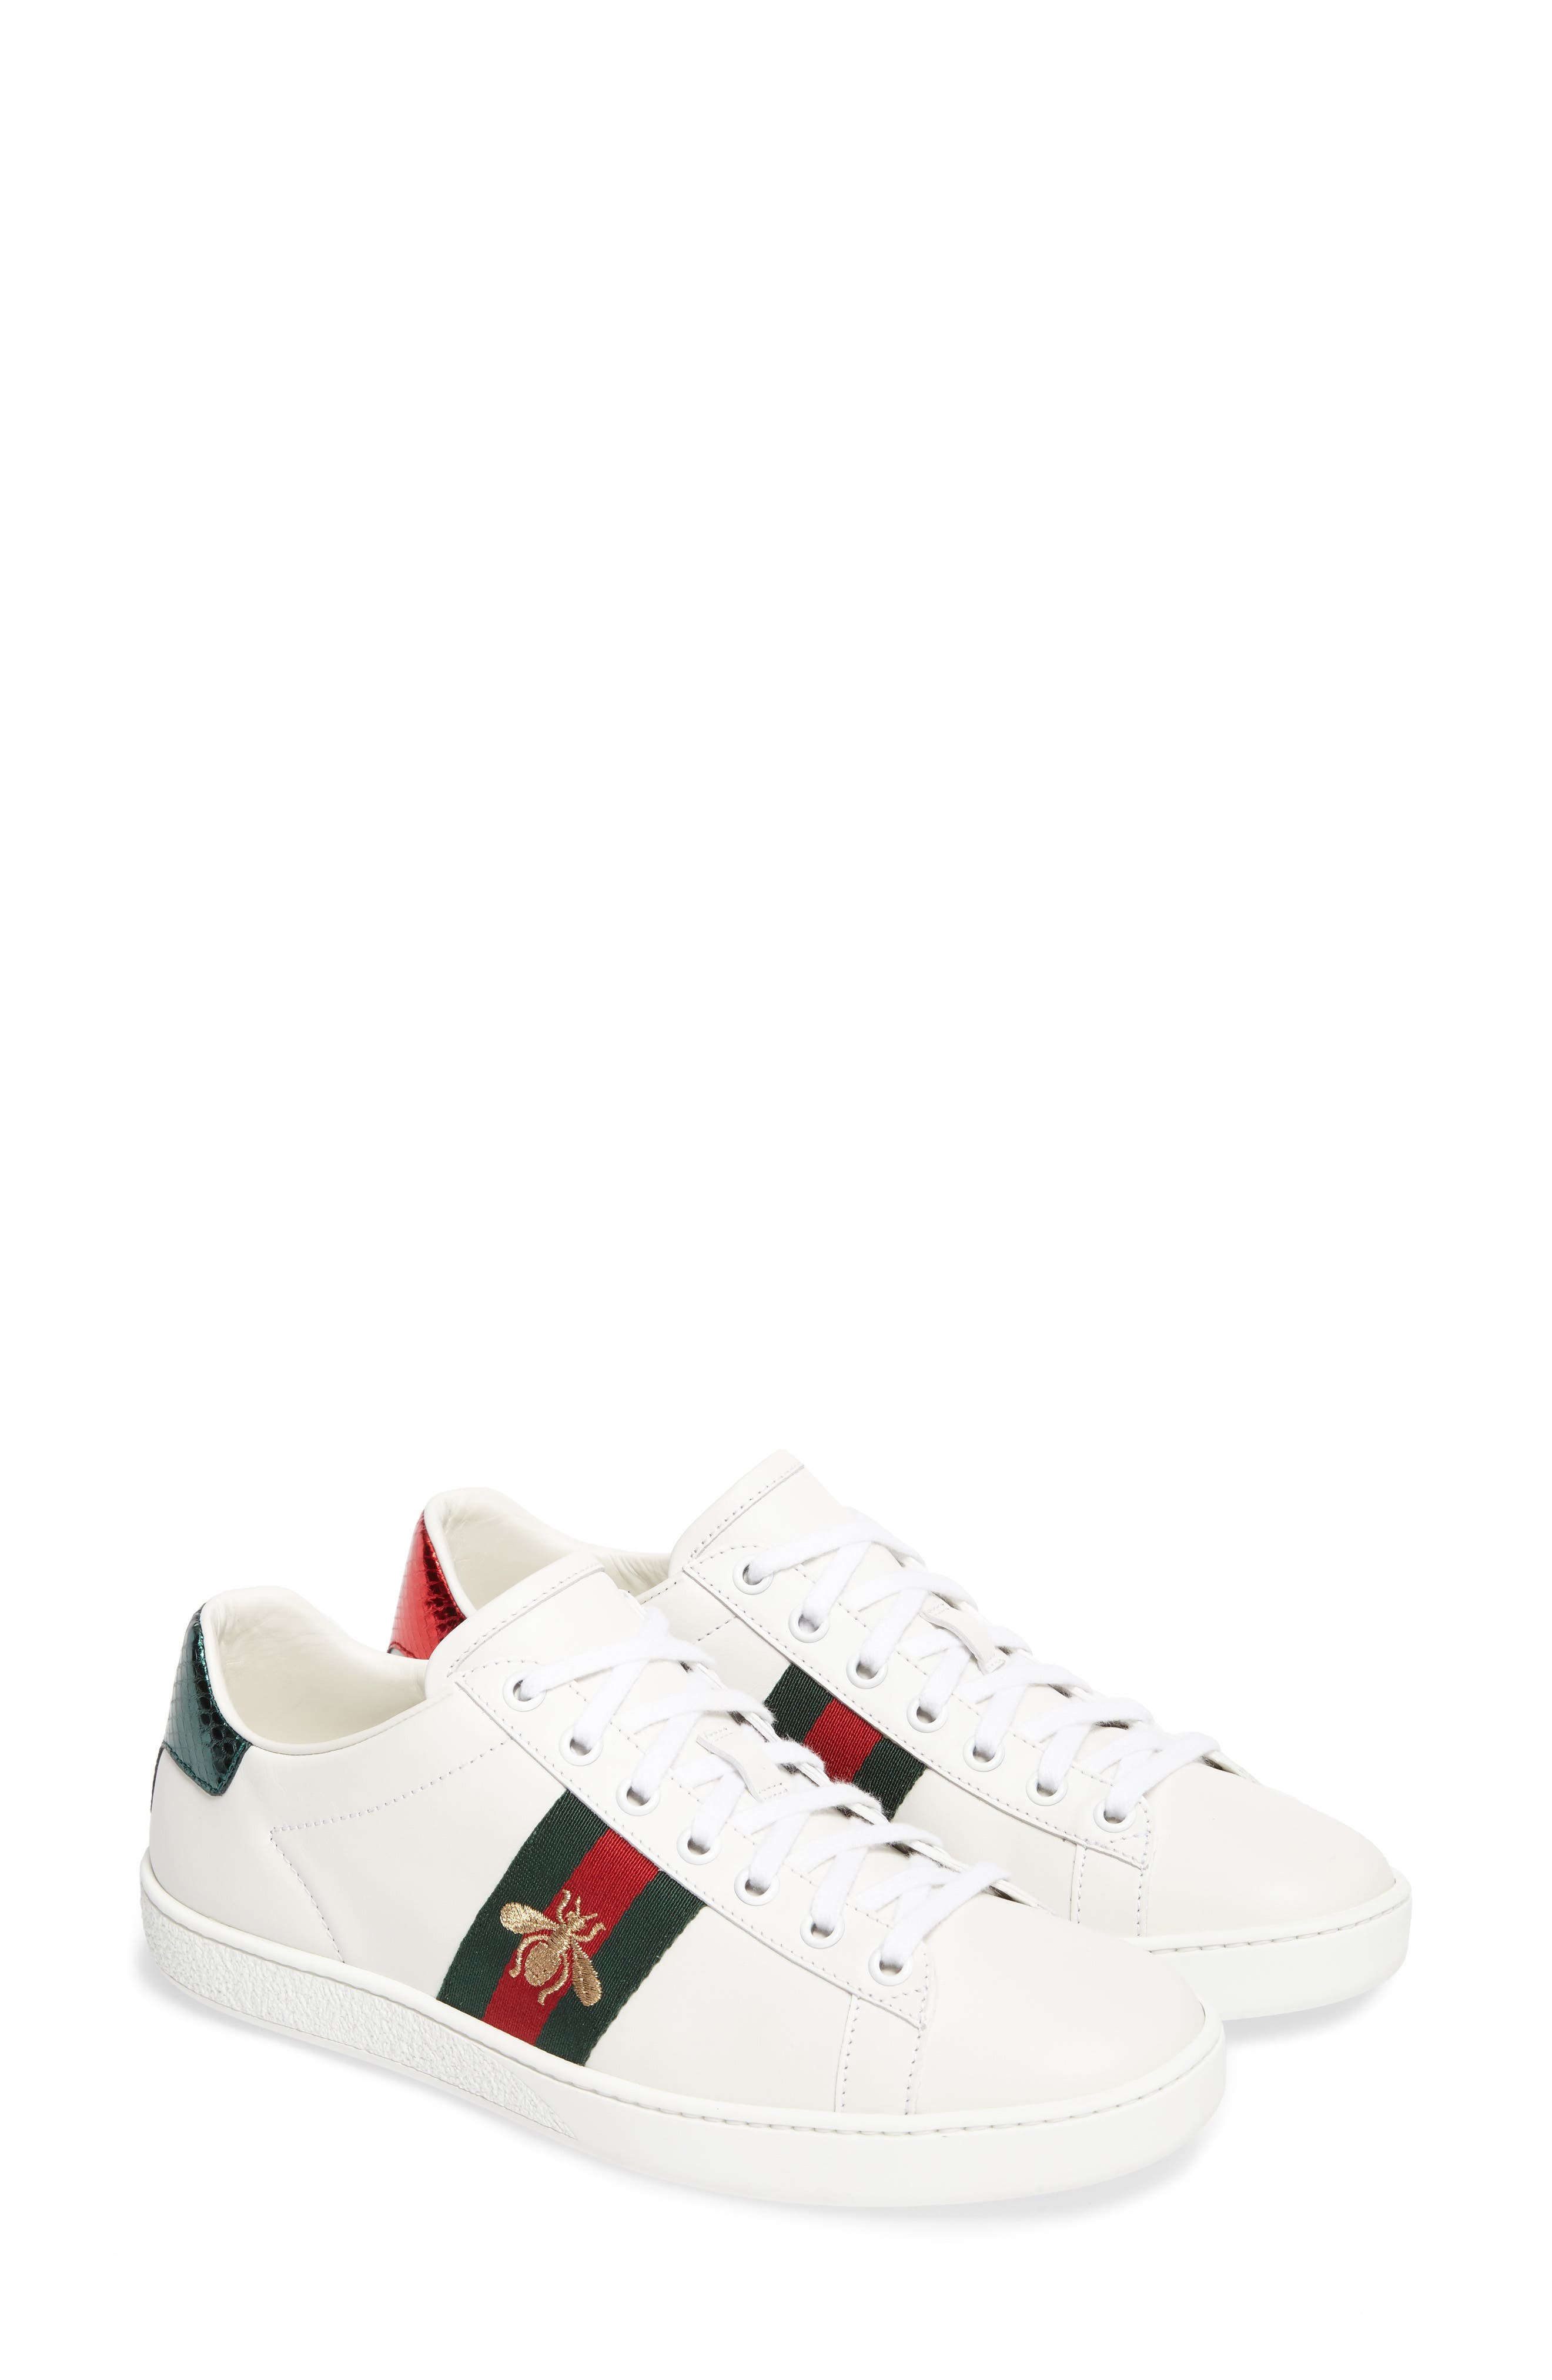 Main Image - Gucci New Ace Sneaker (Women)